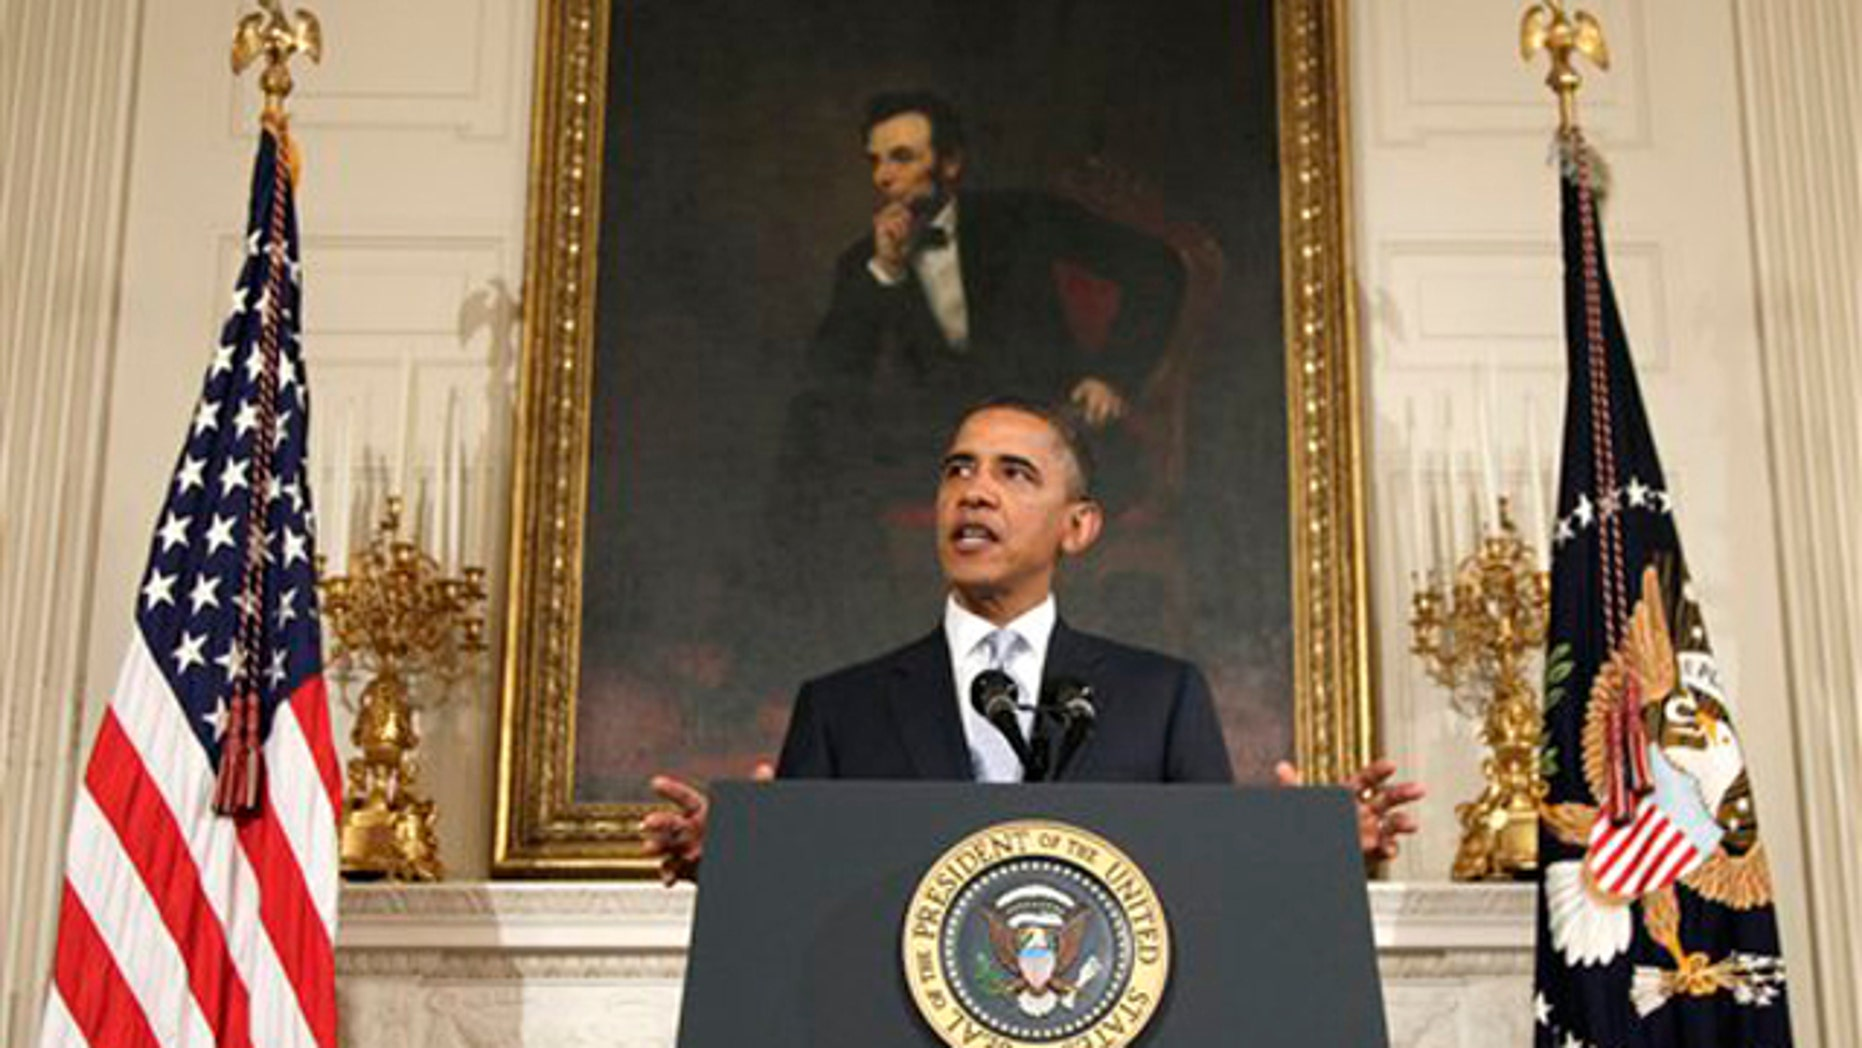 Monday: President Obama speaks in the State Dining Room of the White House on the S&P downgrade.